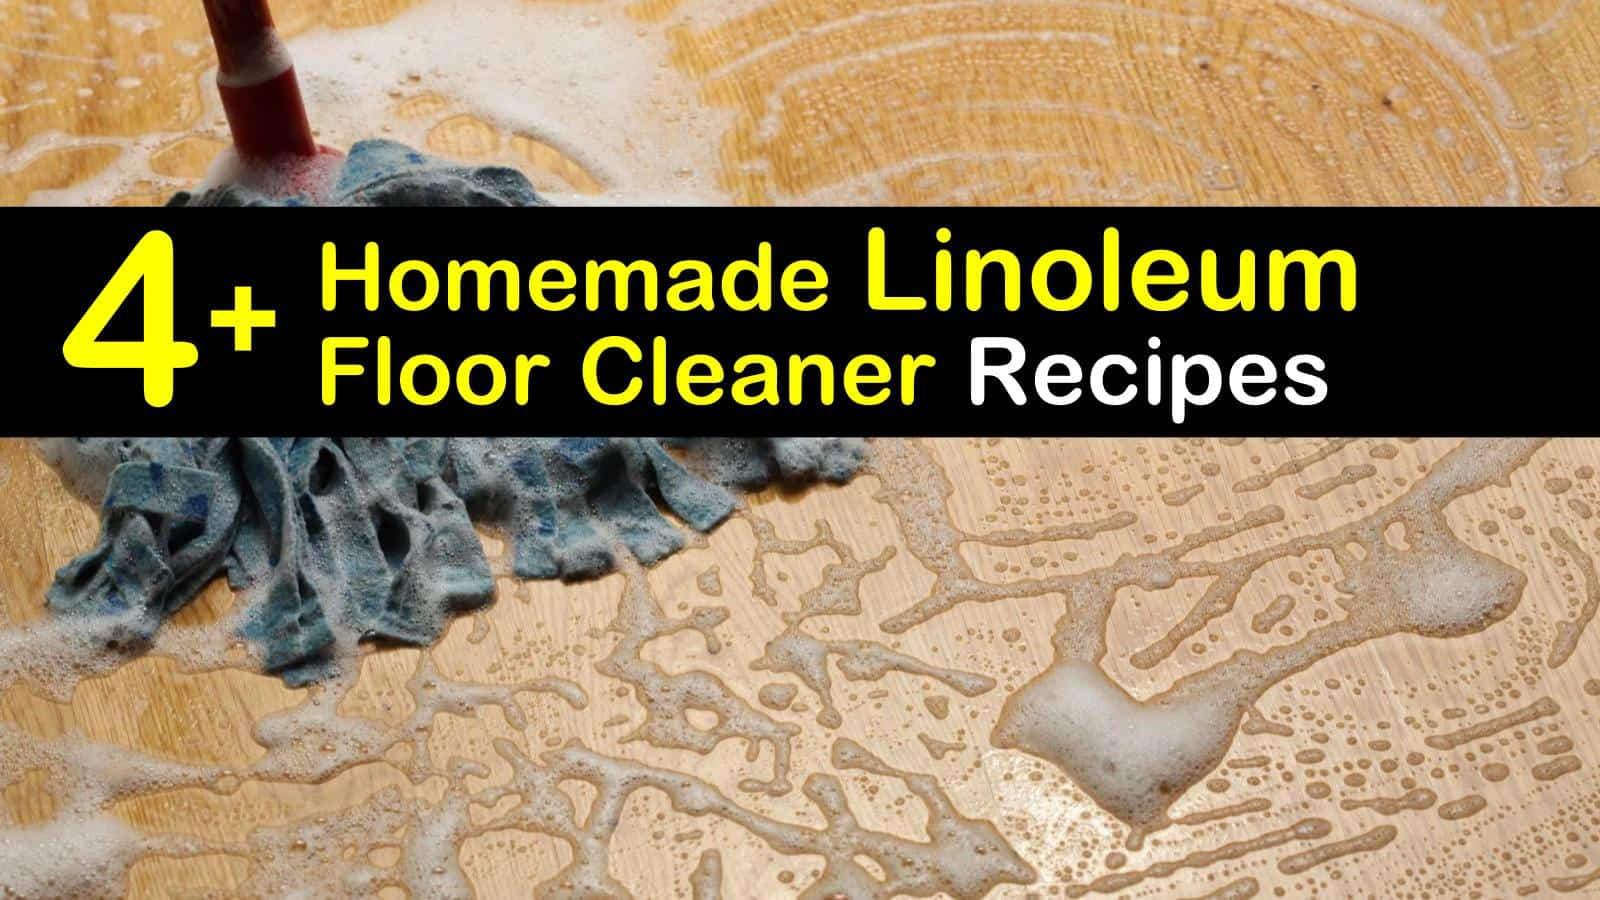 Easy-to-Make Linoleum Floor Cleaner Recipes